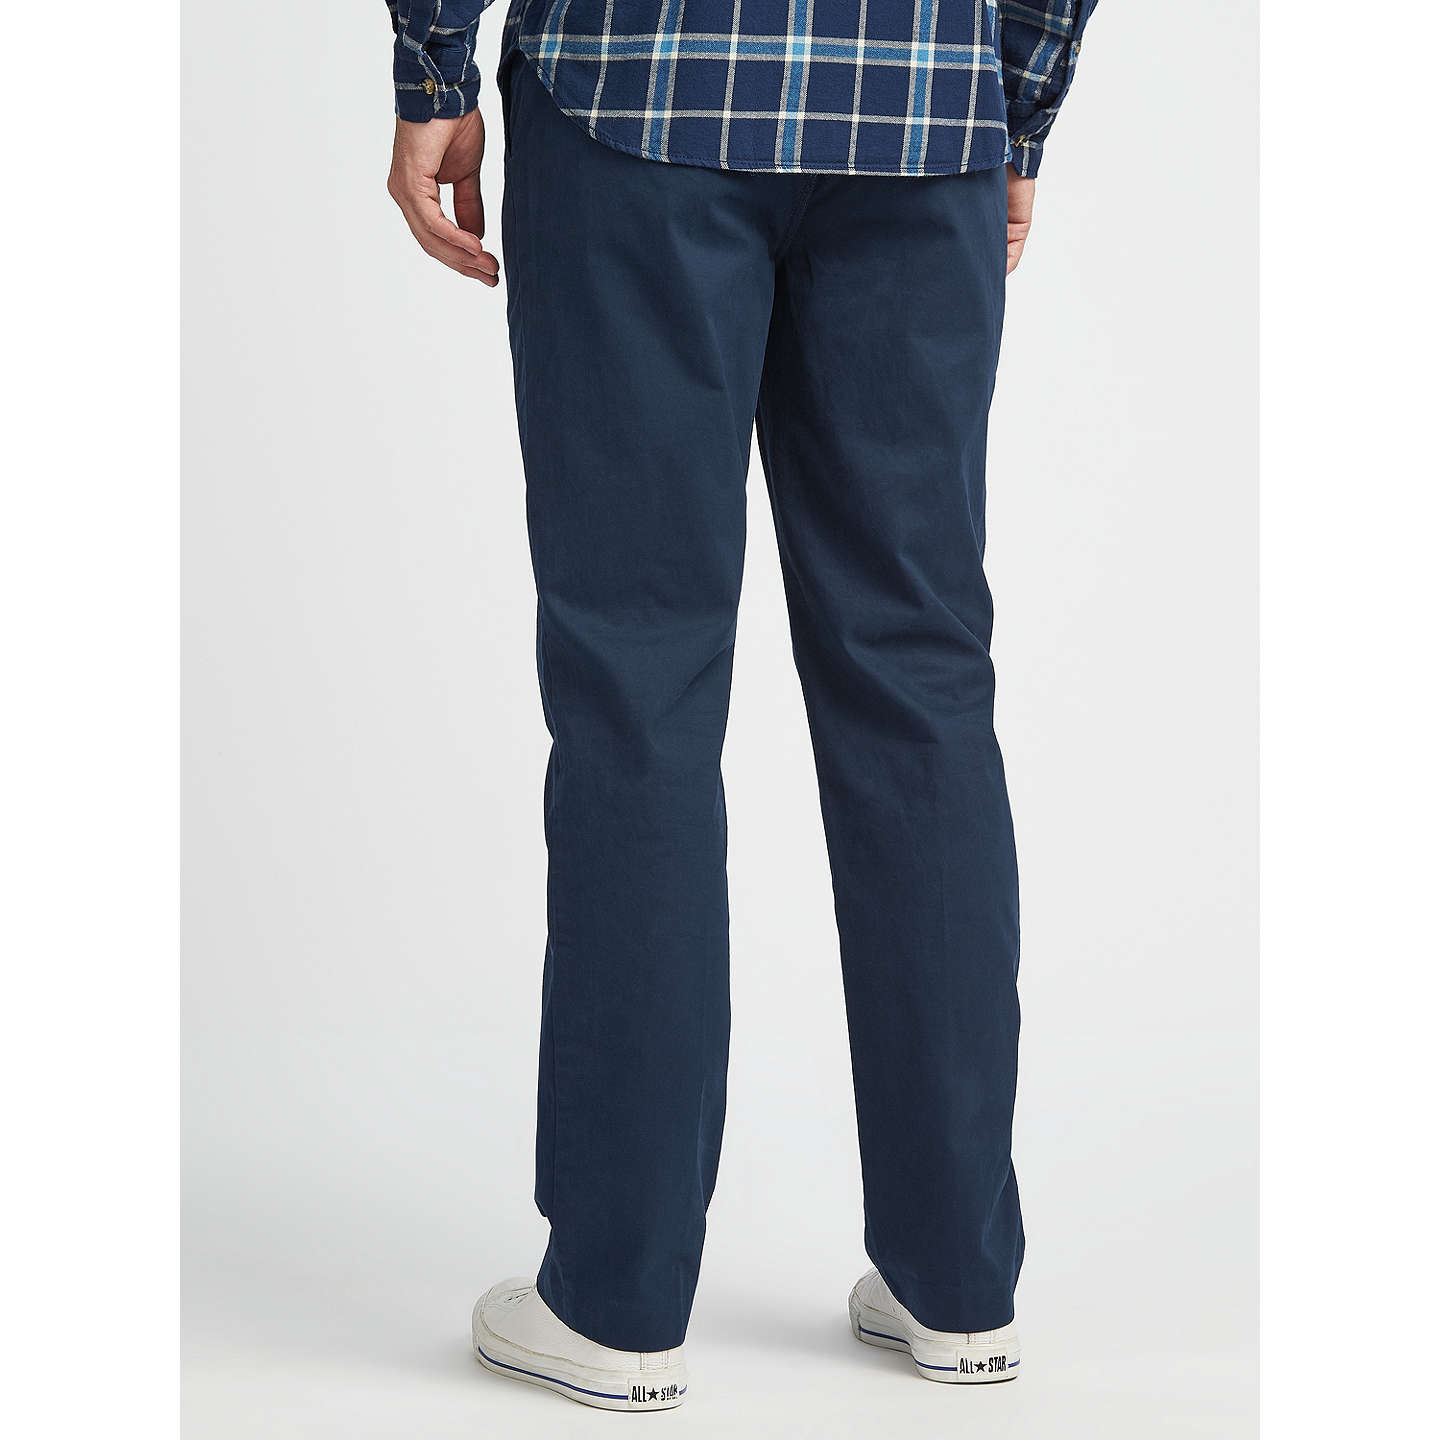 BuyJohn Lewis Lumsden Cotton Chinos, Navy, 32S Online at johnlewis.com